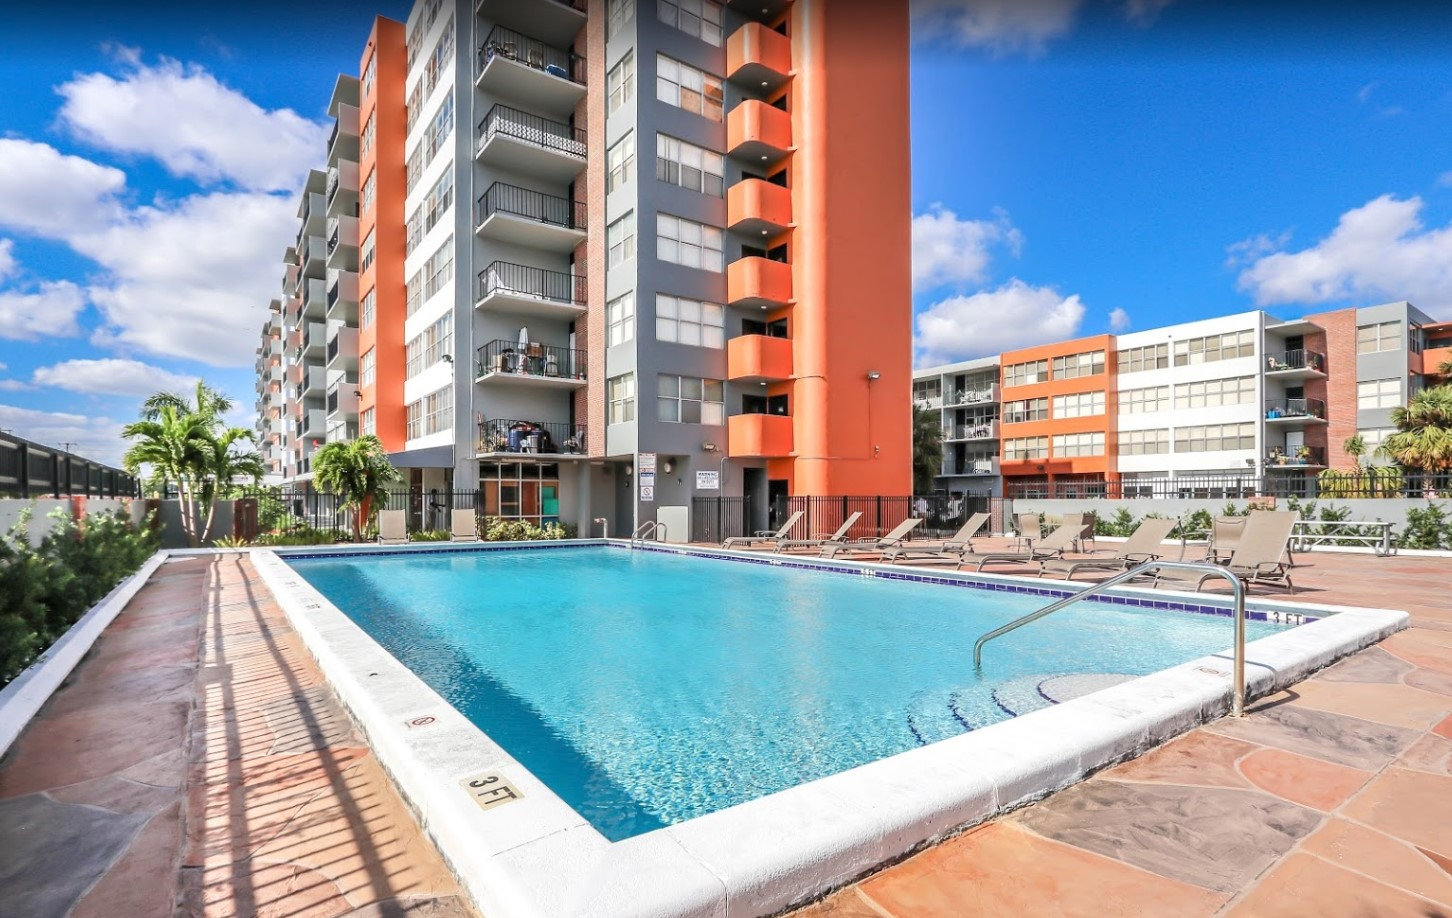 Sparkling Swimming Pool at Grand Island Square Apartments in North Miami Beach, Florida